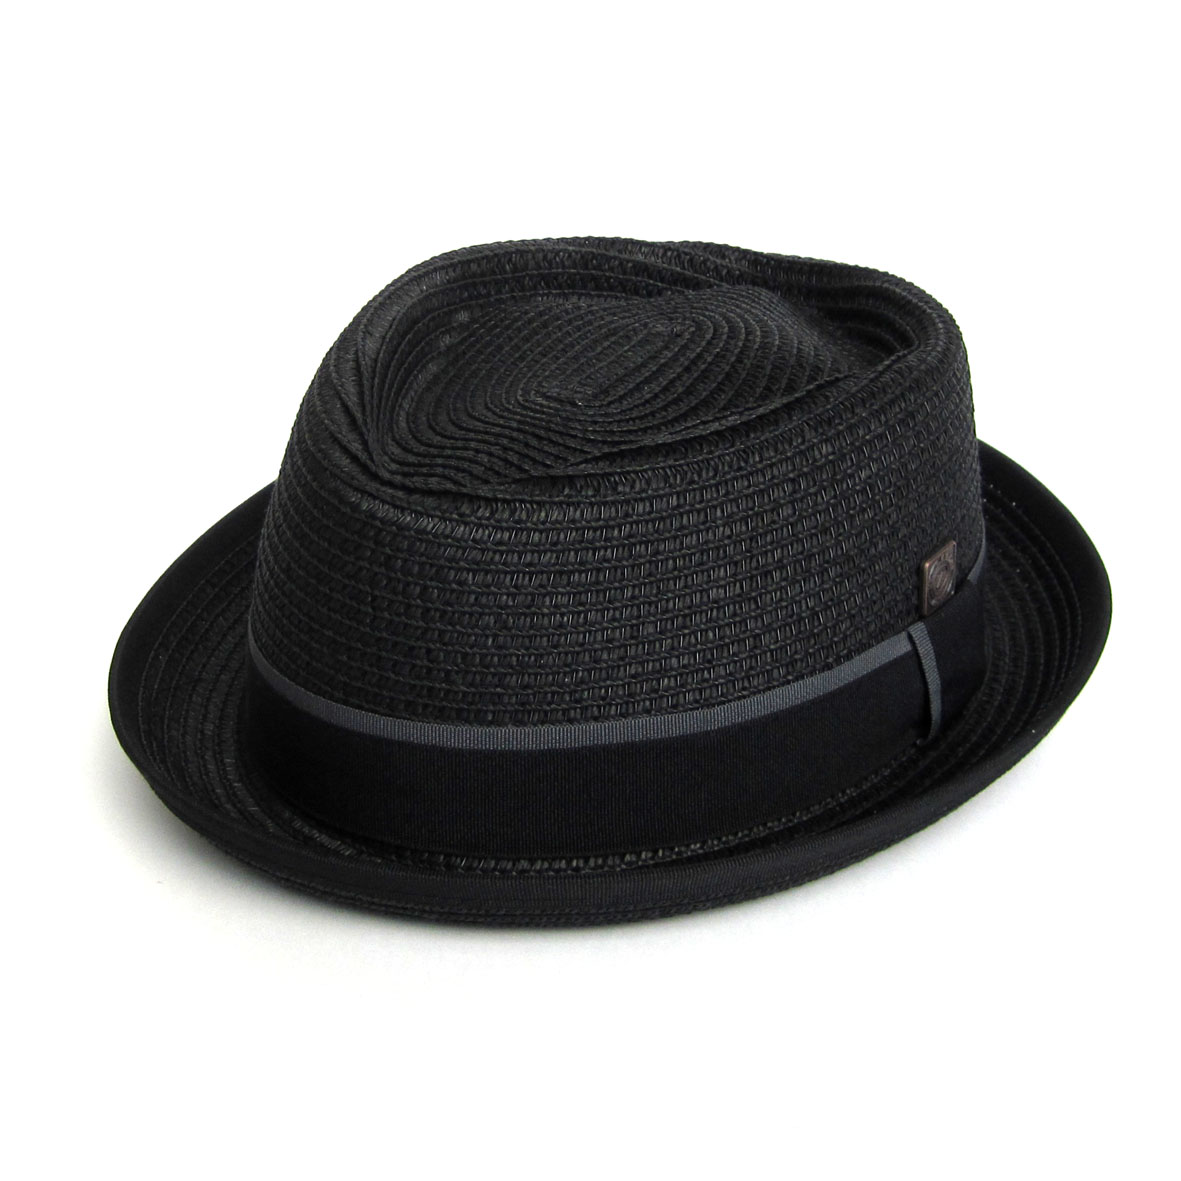 UK Pork Pie Hats from Dasmarca – Buy Online fdbbd71c536